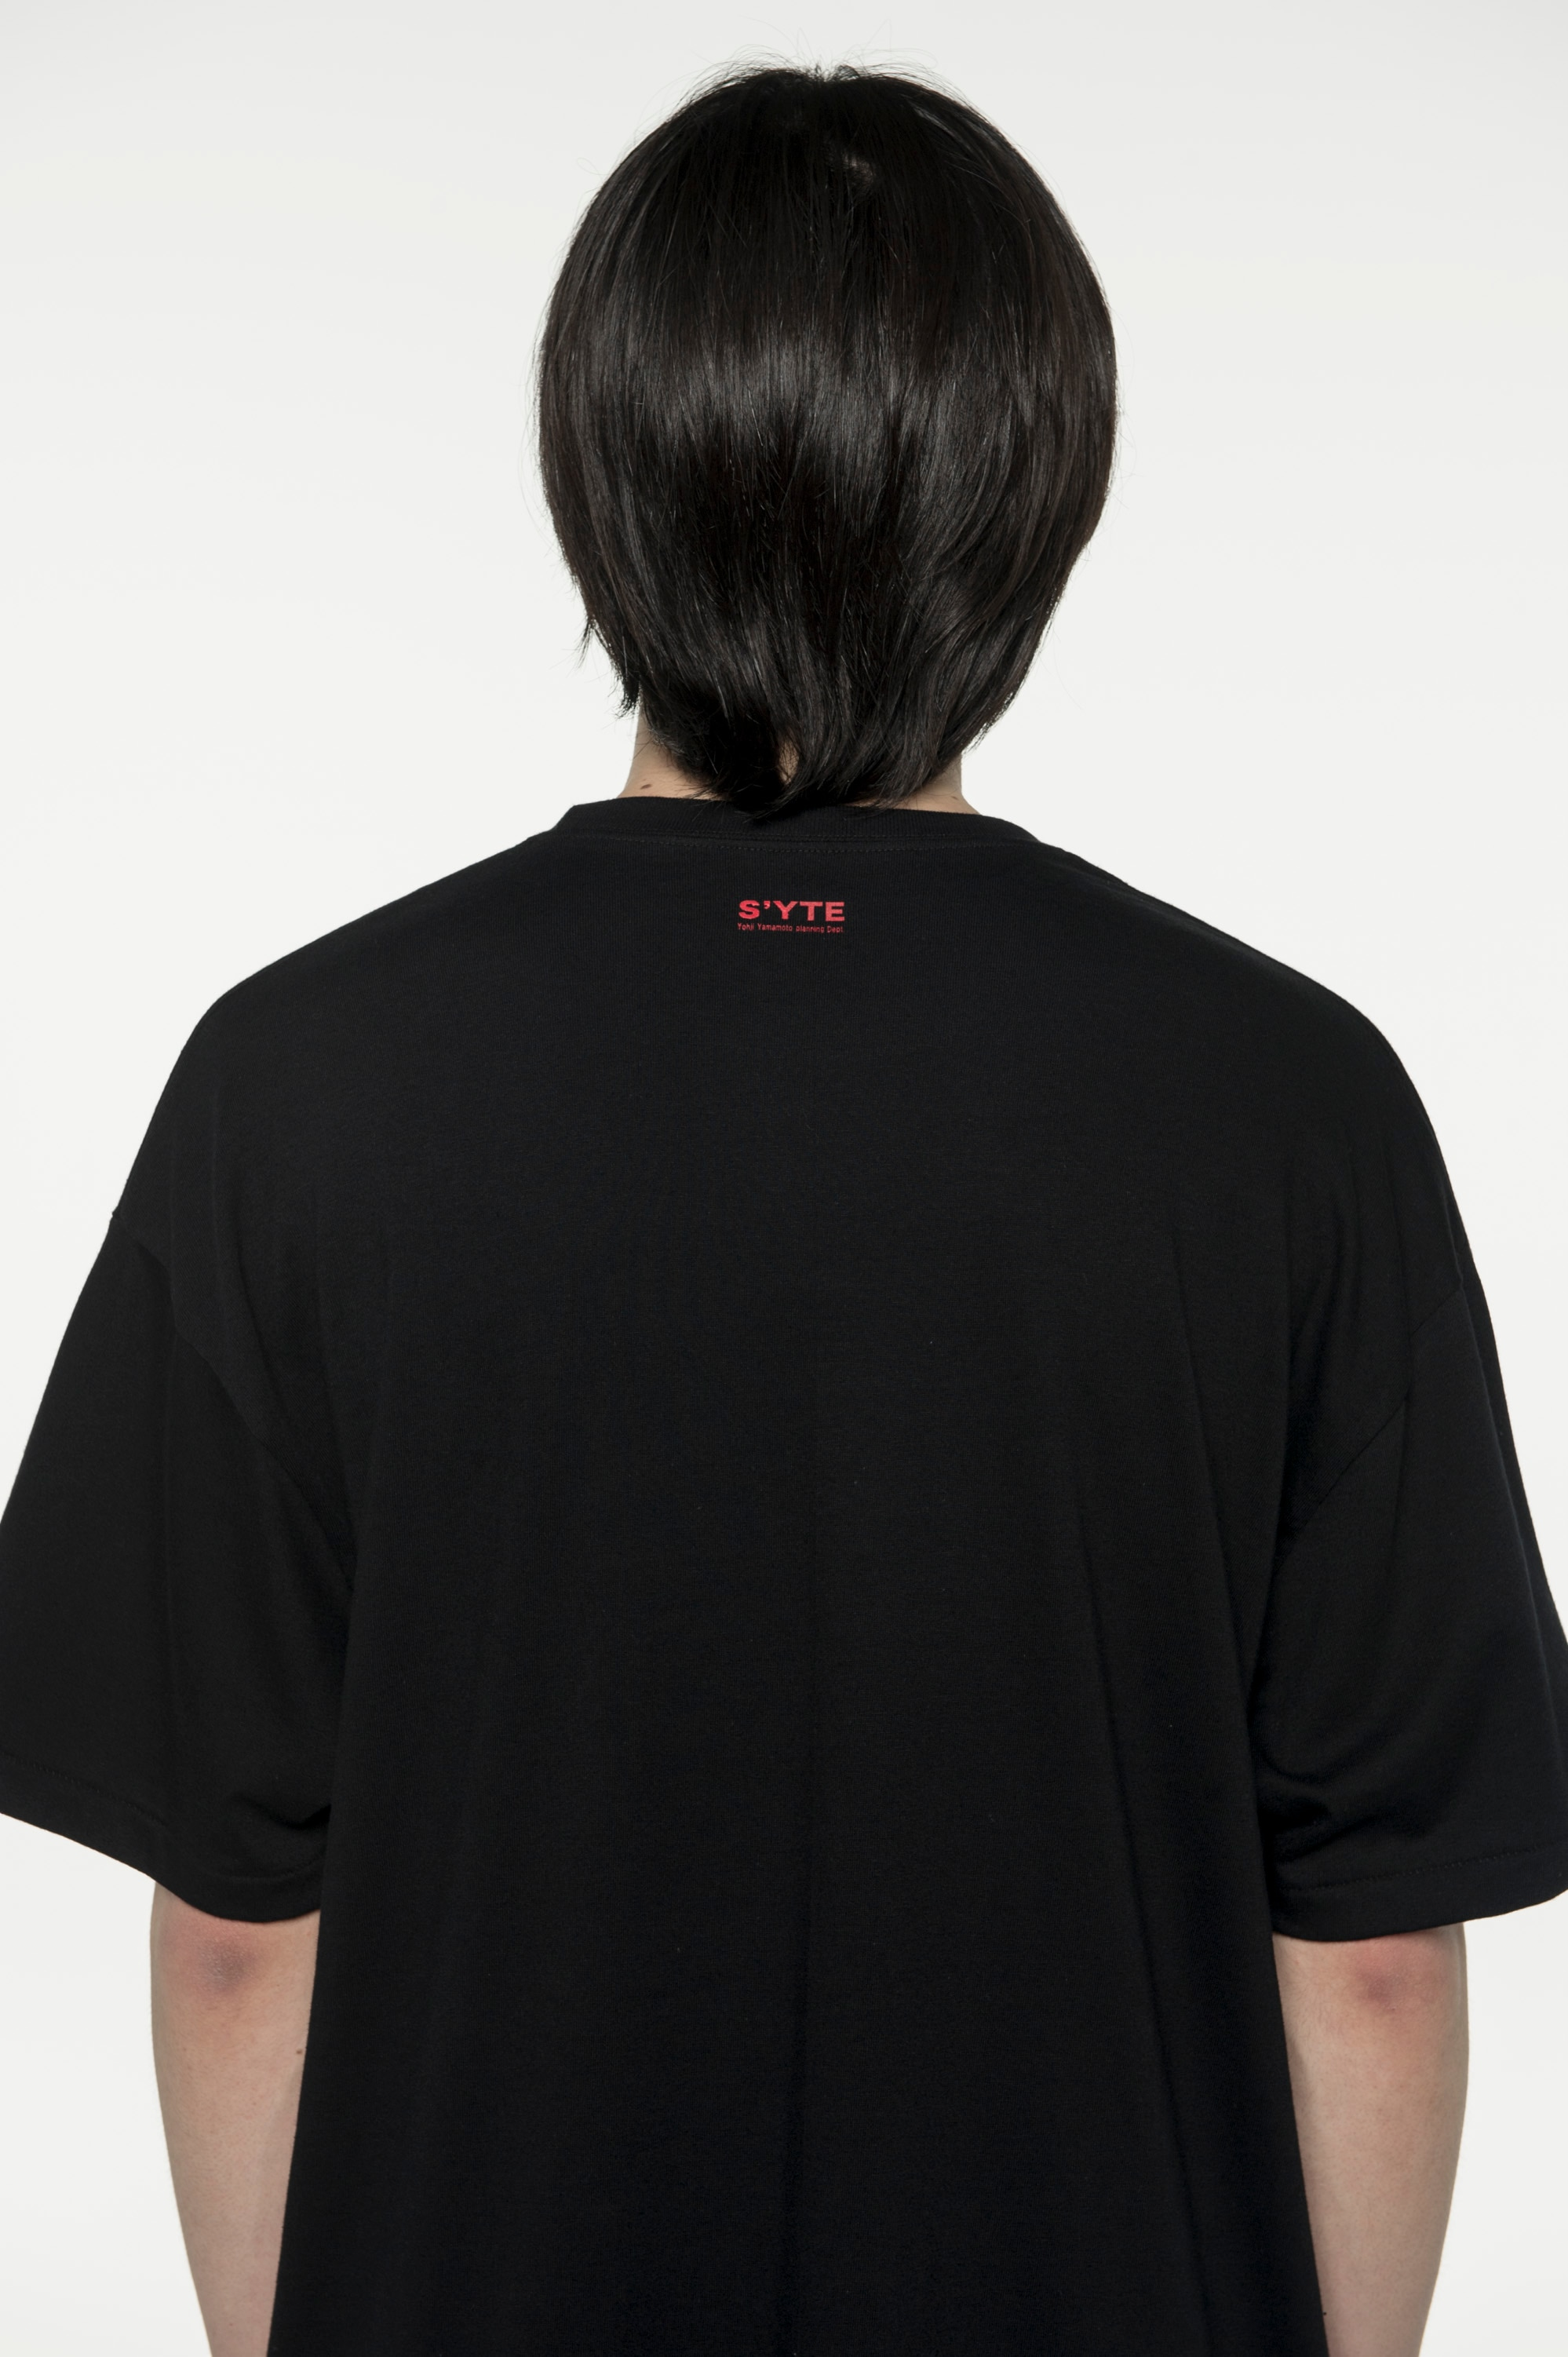 20 / CottonJersey Poison Red No 8 T-shirt